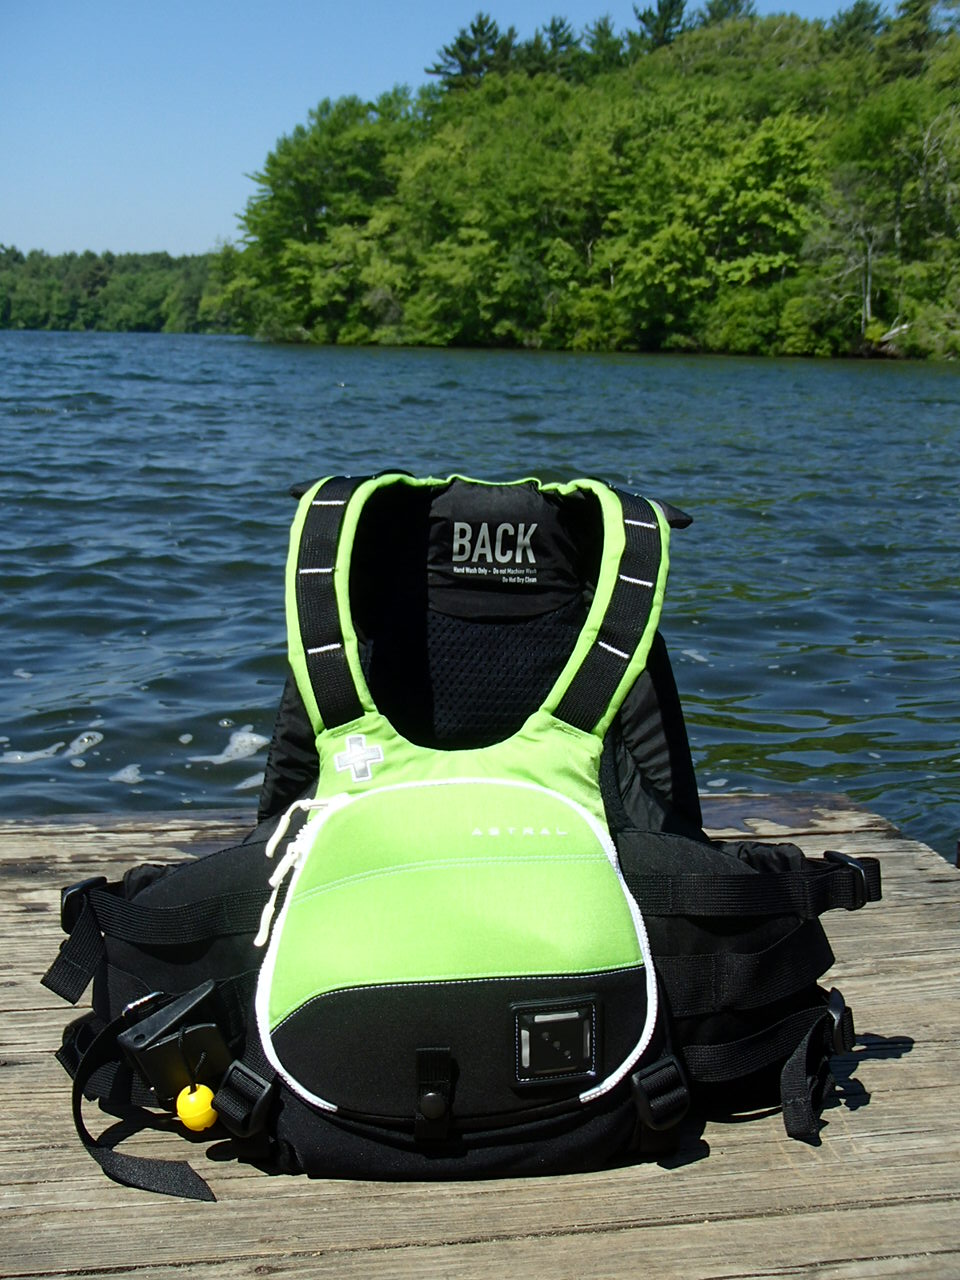 Astral Greenjacket (2013 Edition) PFD Review | Kayak Dave's